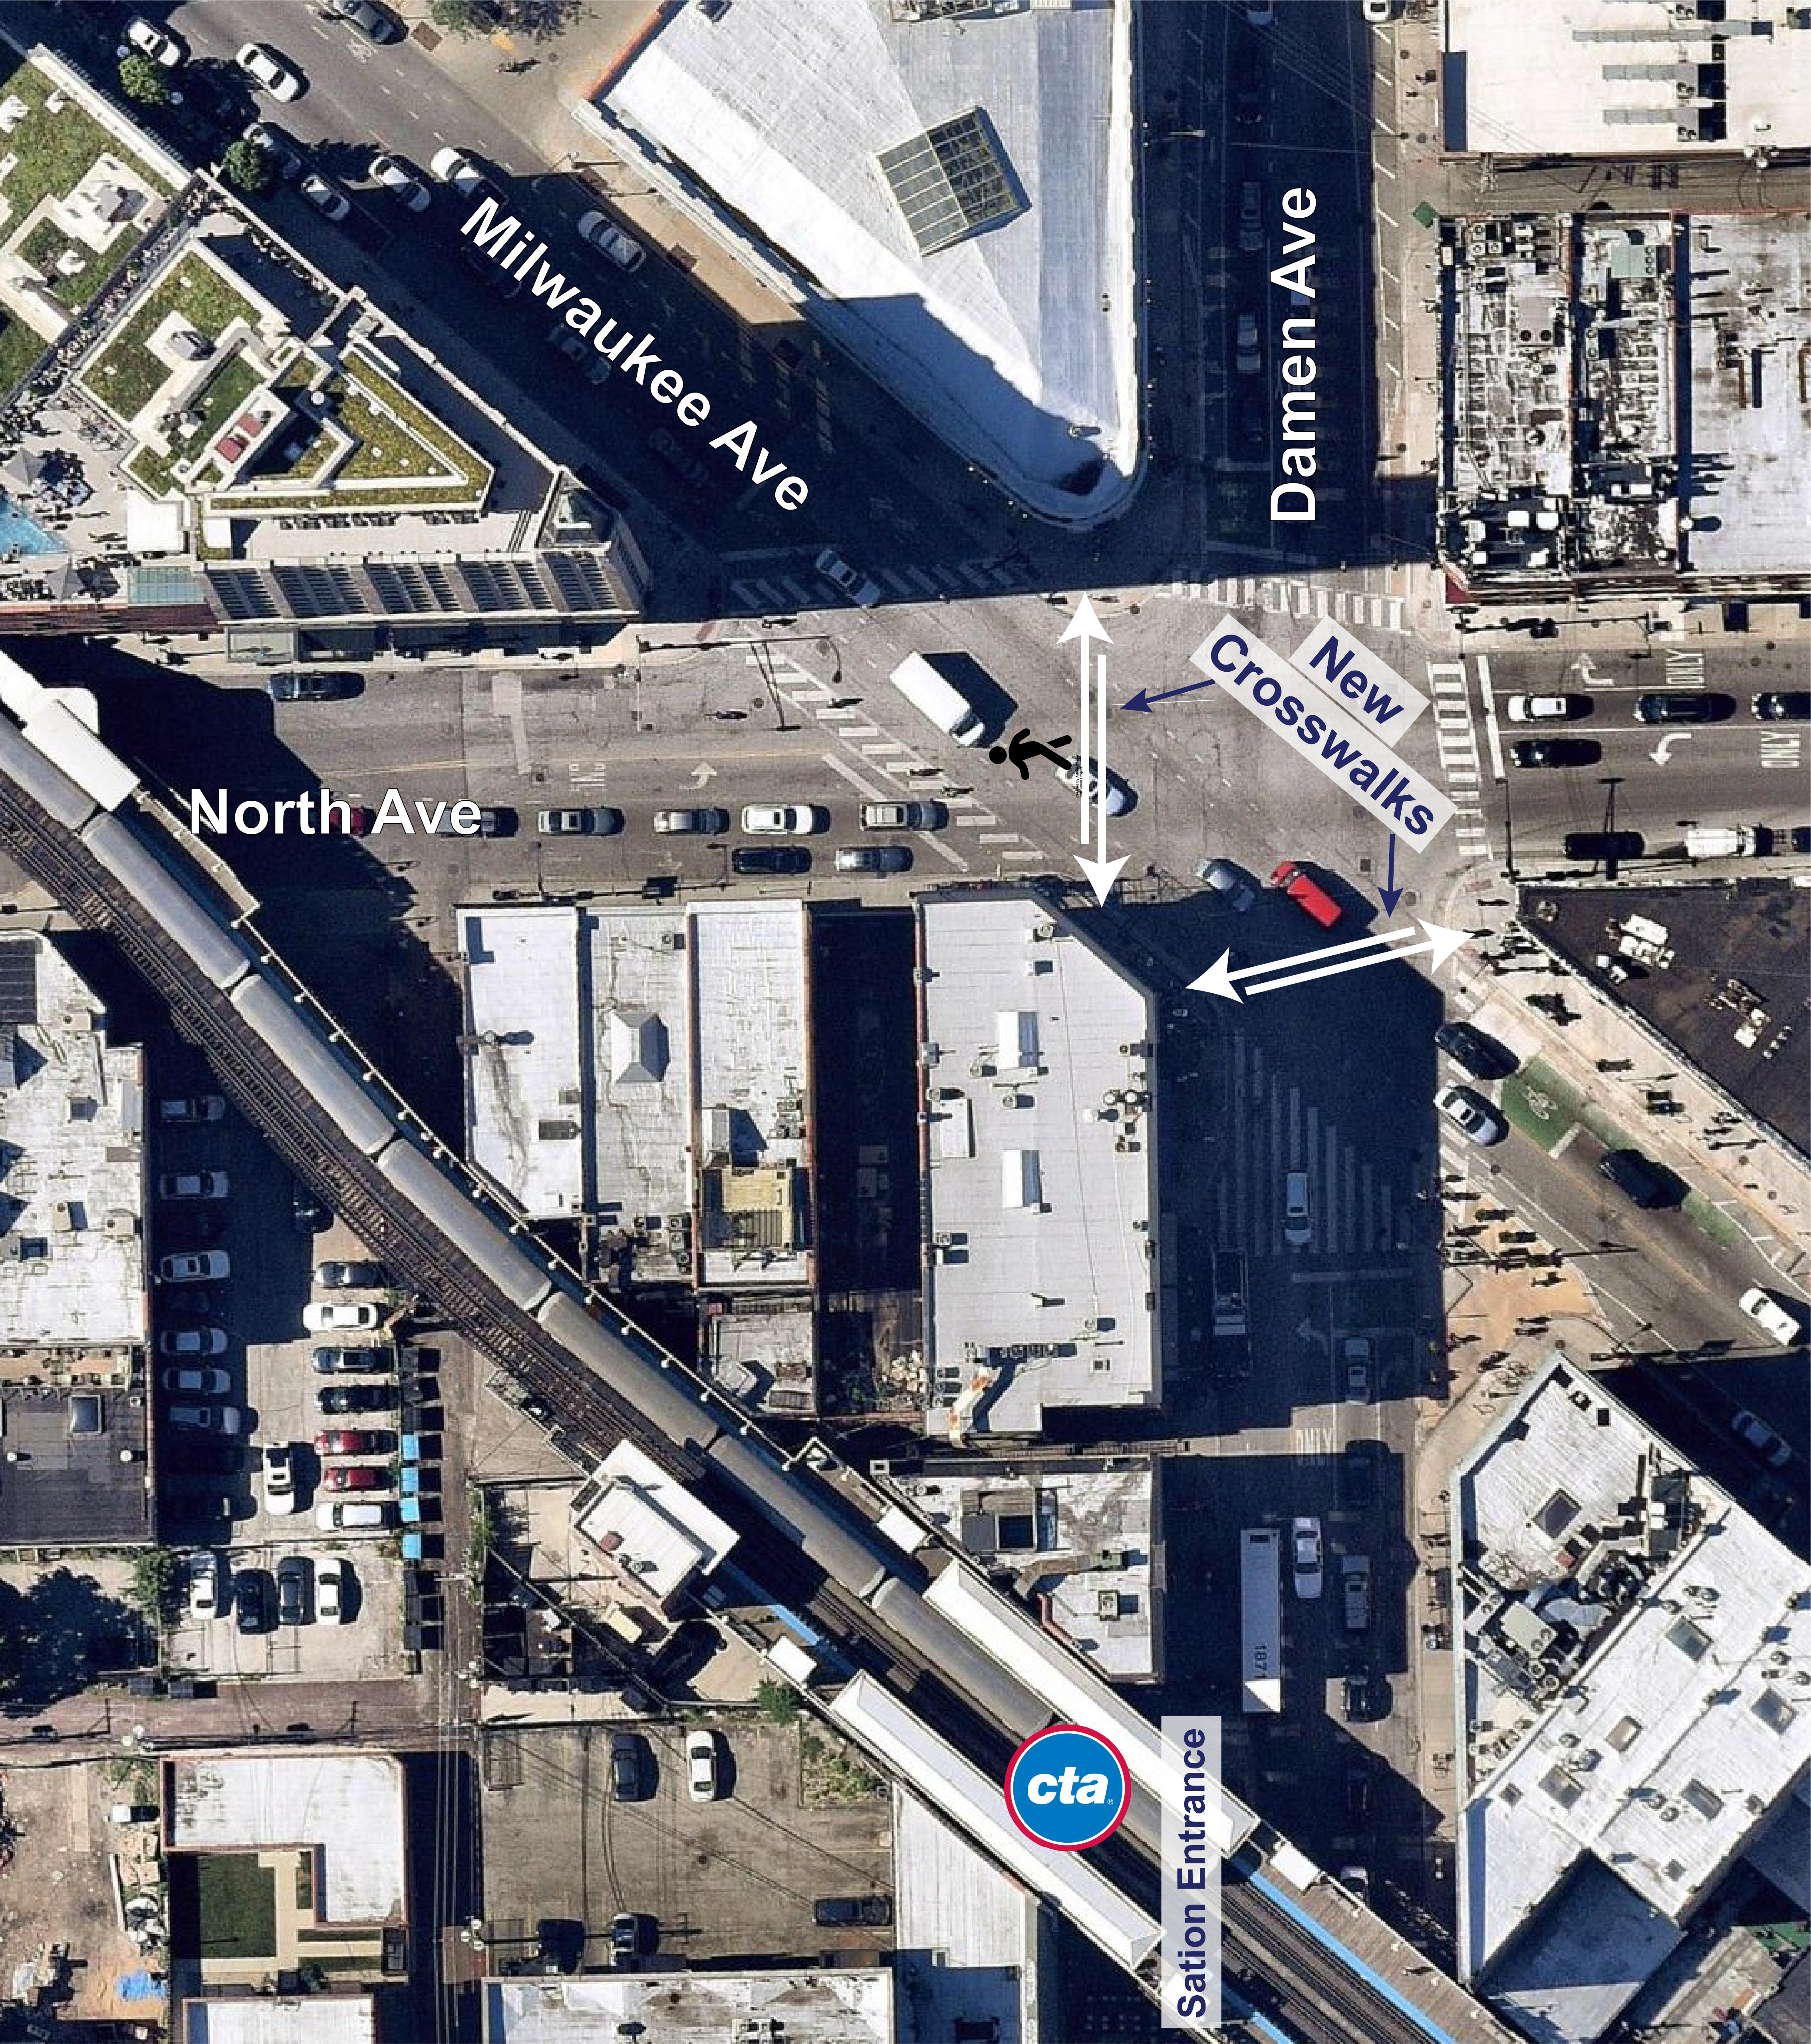 Aerial labeled image of intersection.